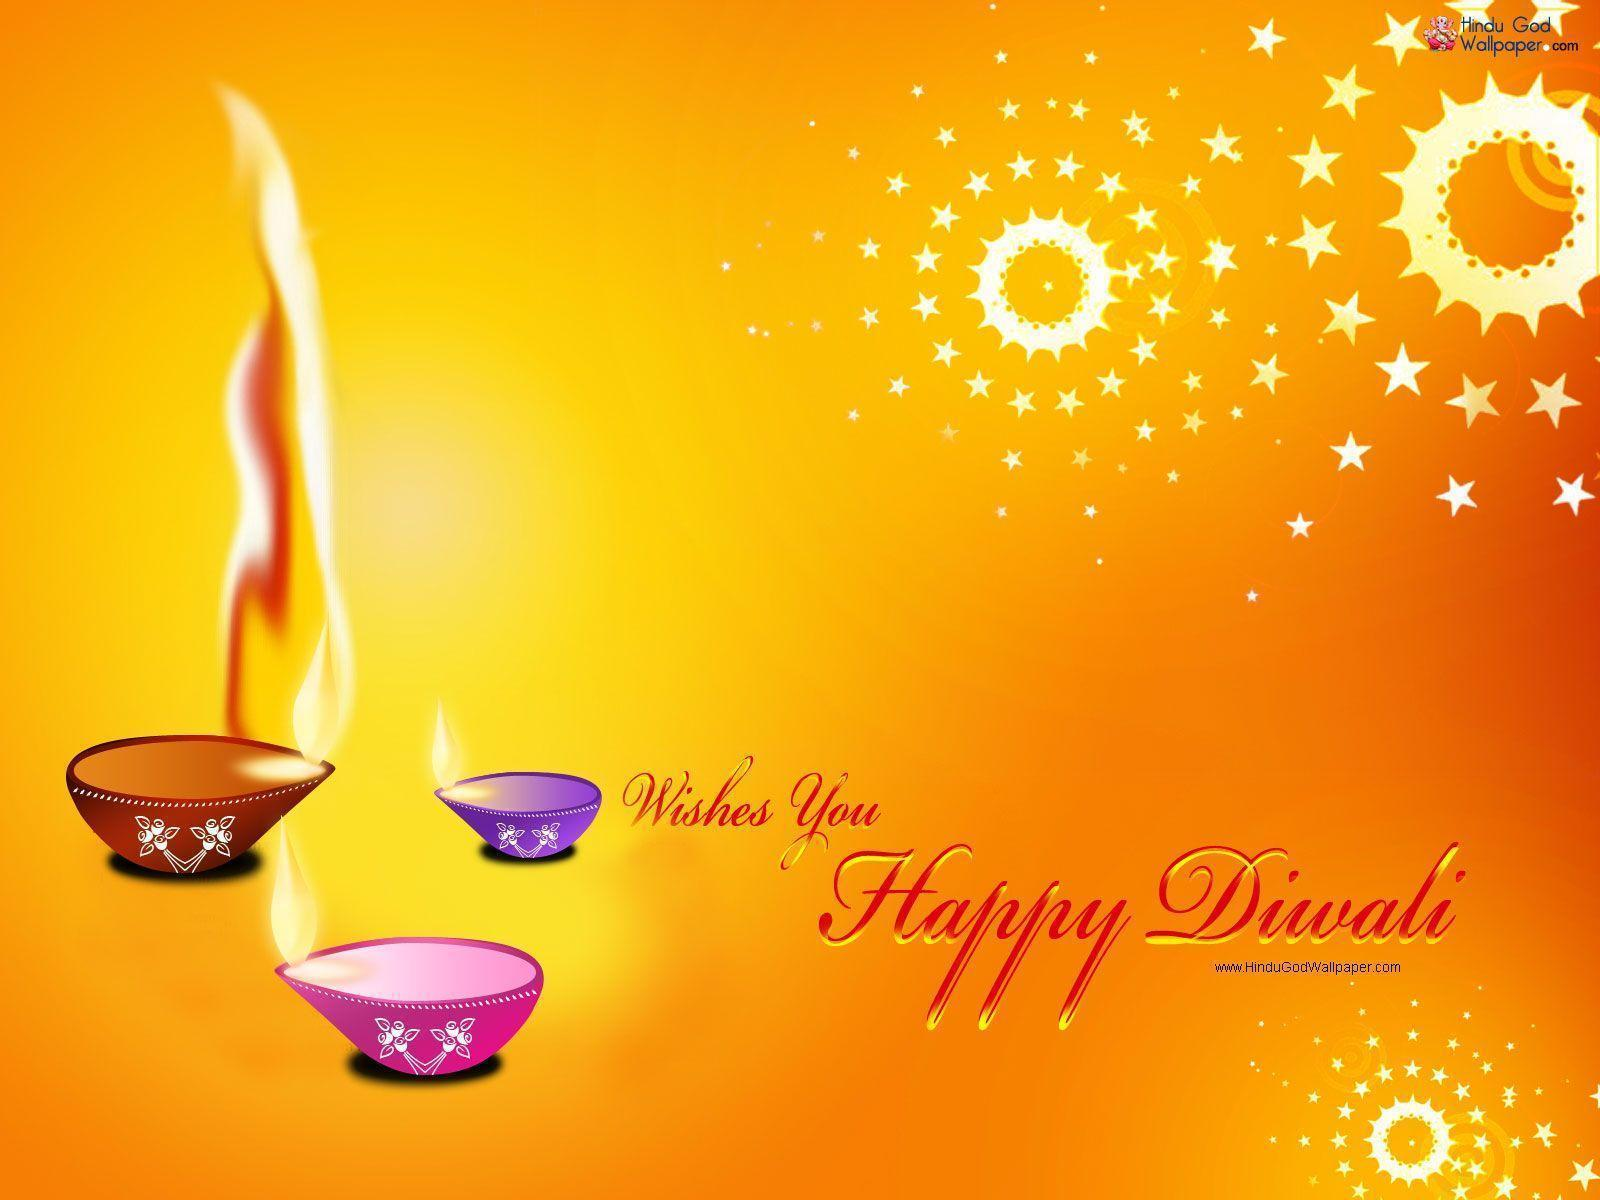 Happy Diwali 2016 HD Wallpapers